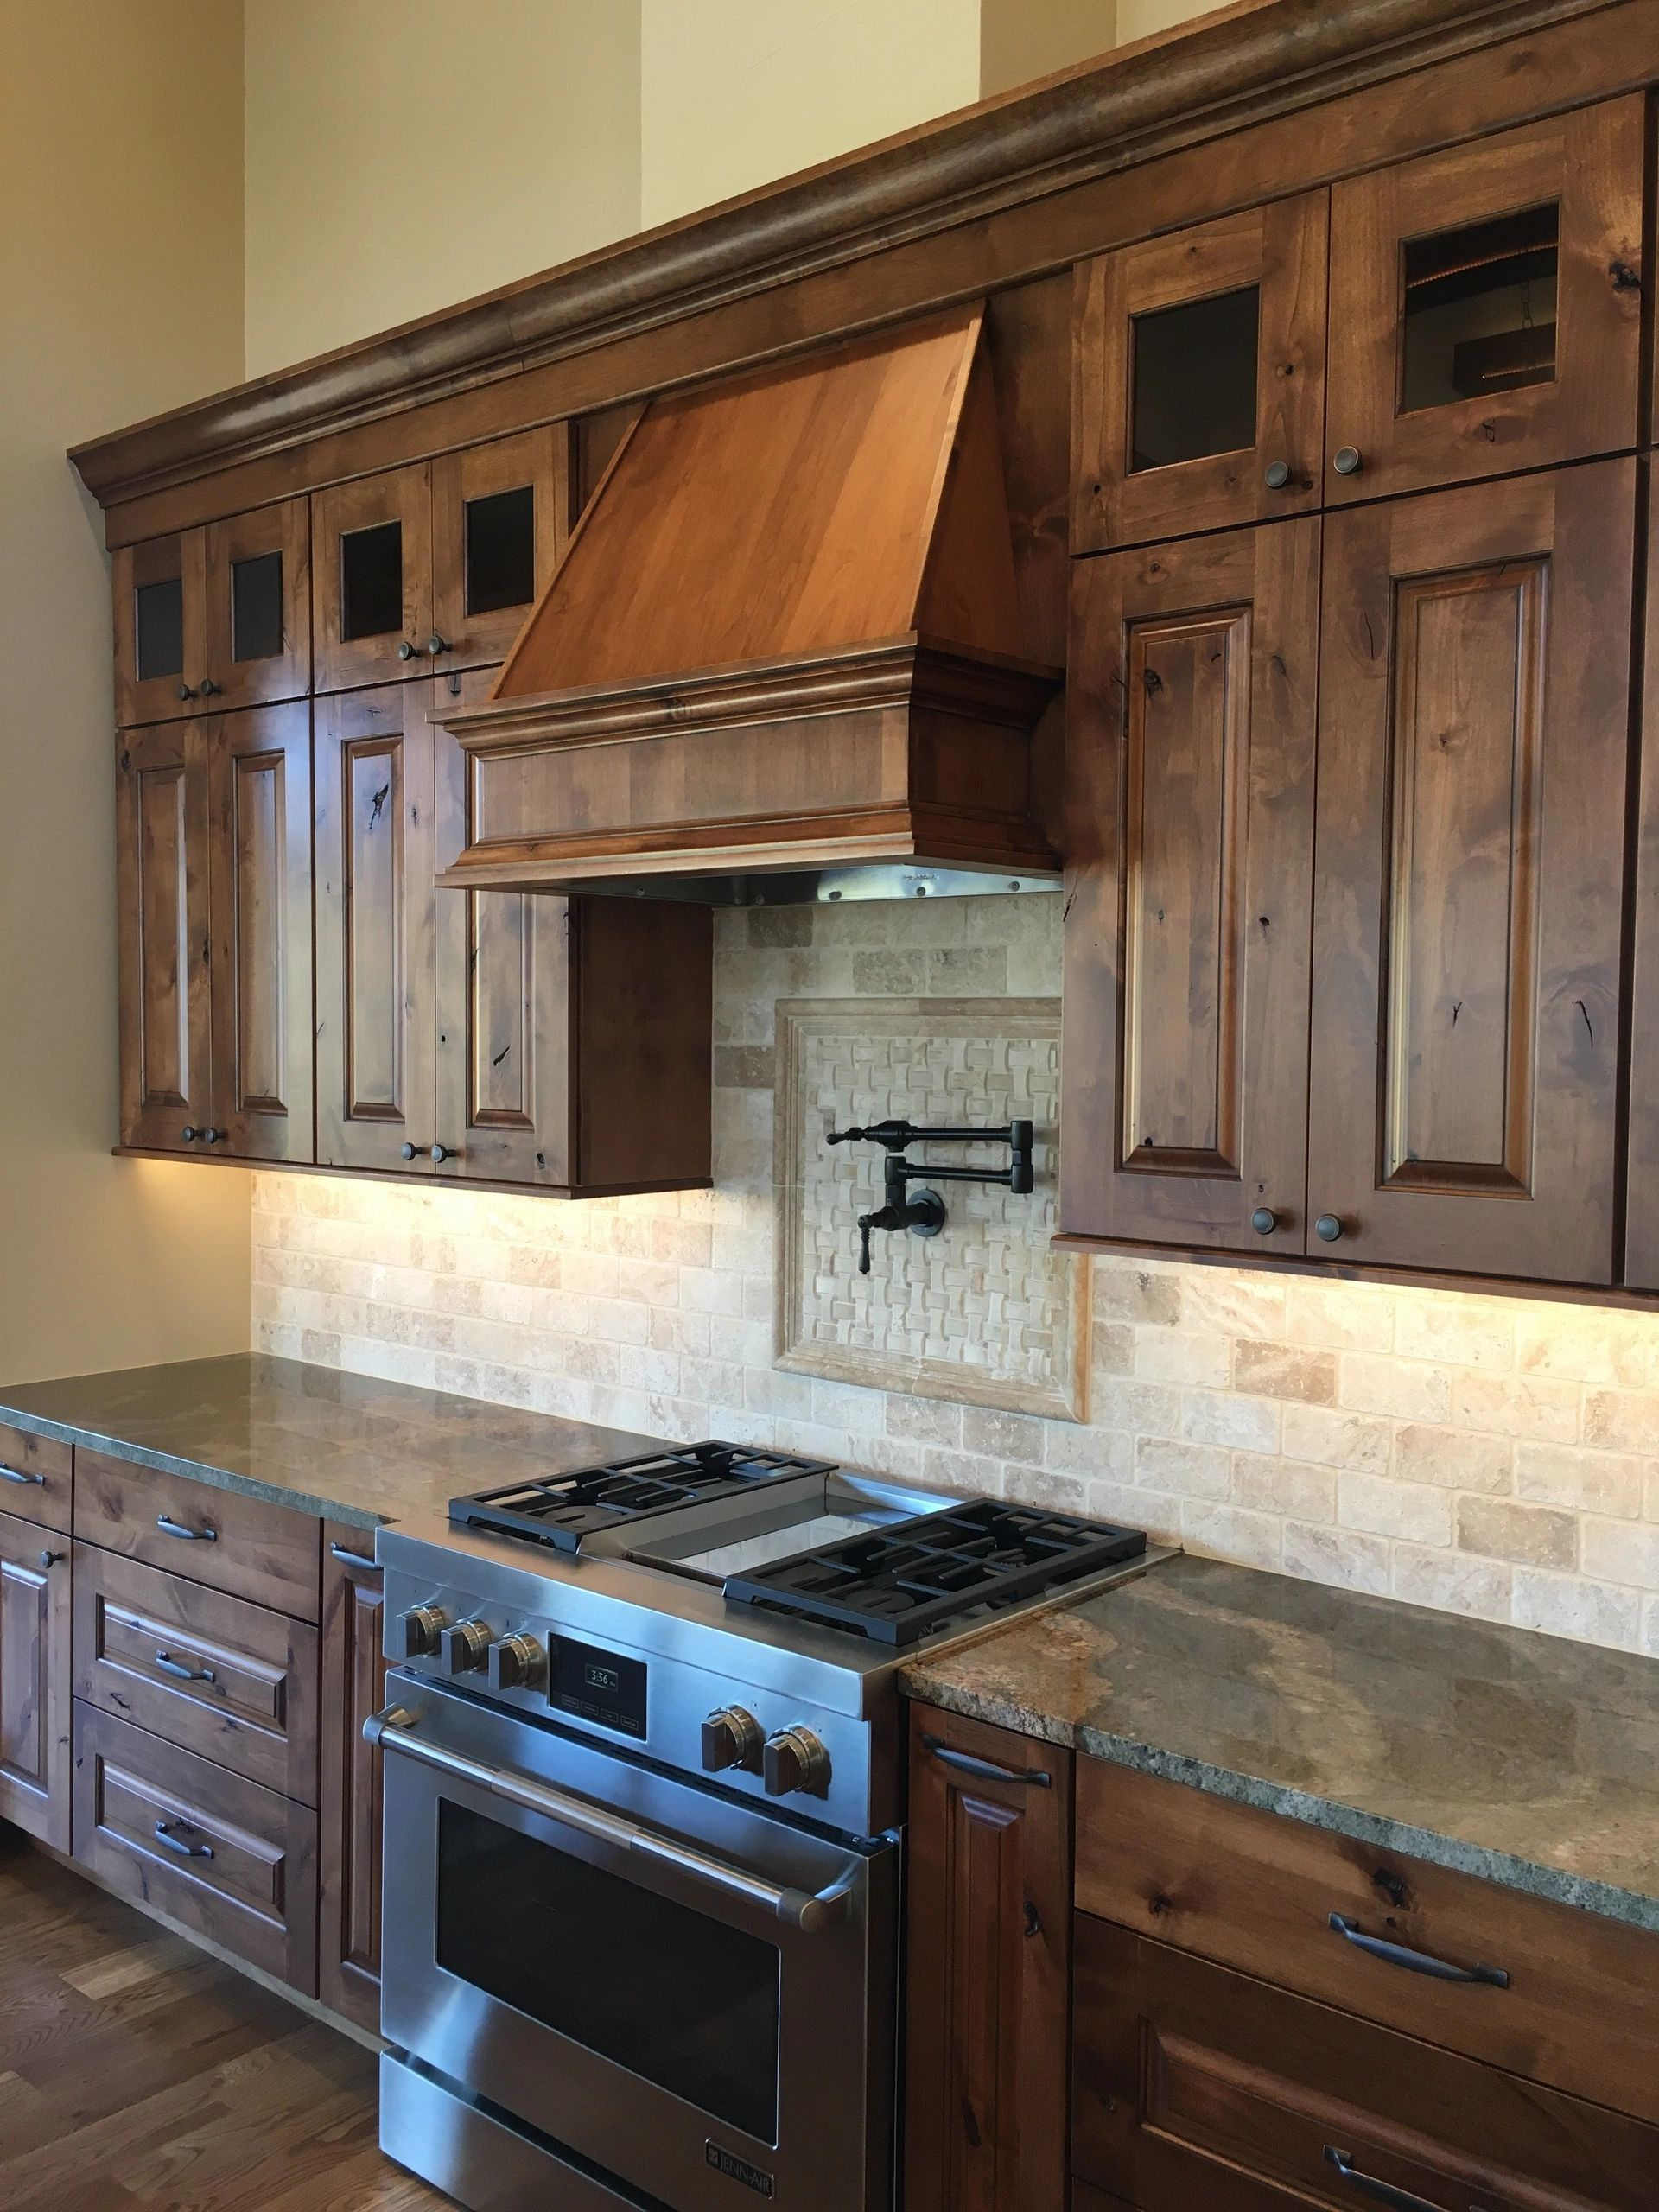 Cabinetry by Cales in Parker - Cabinetry by Cales